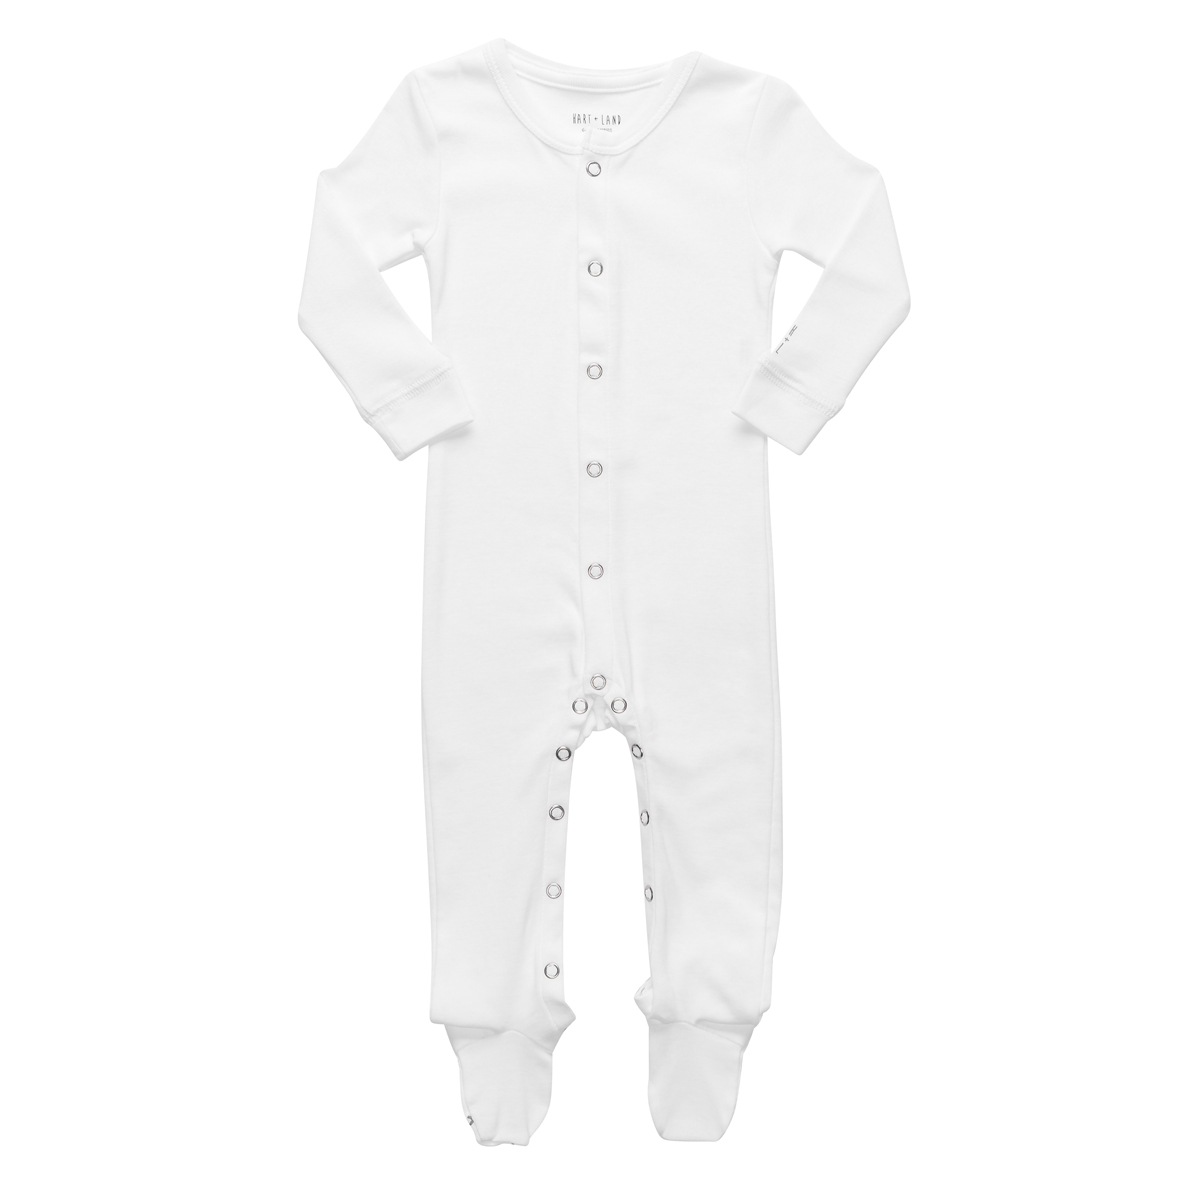 Hart + Land Long Sleeve Footie in Solid White